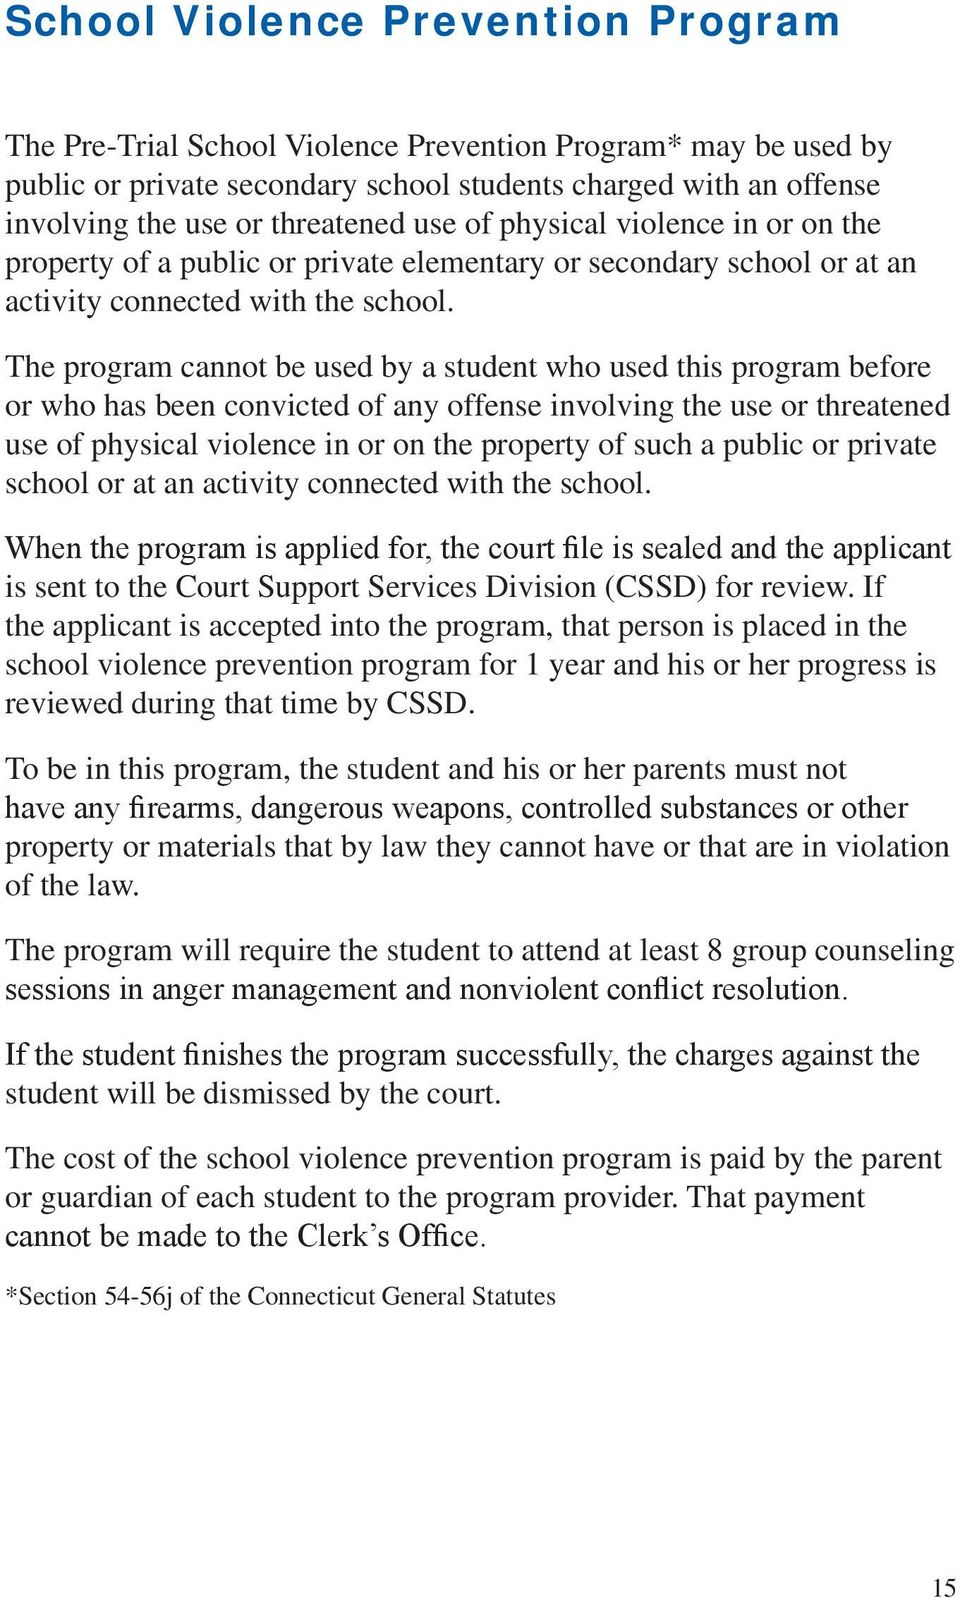 The program cannot be used by a student who used this program before or who has been convicted of any offense involving the use or threatened use of physical violence in or on the property of such a